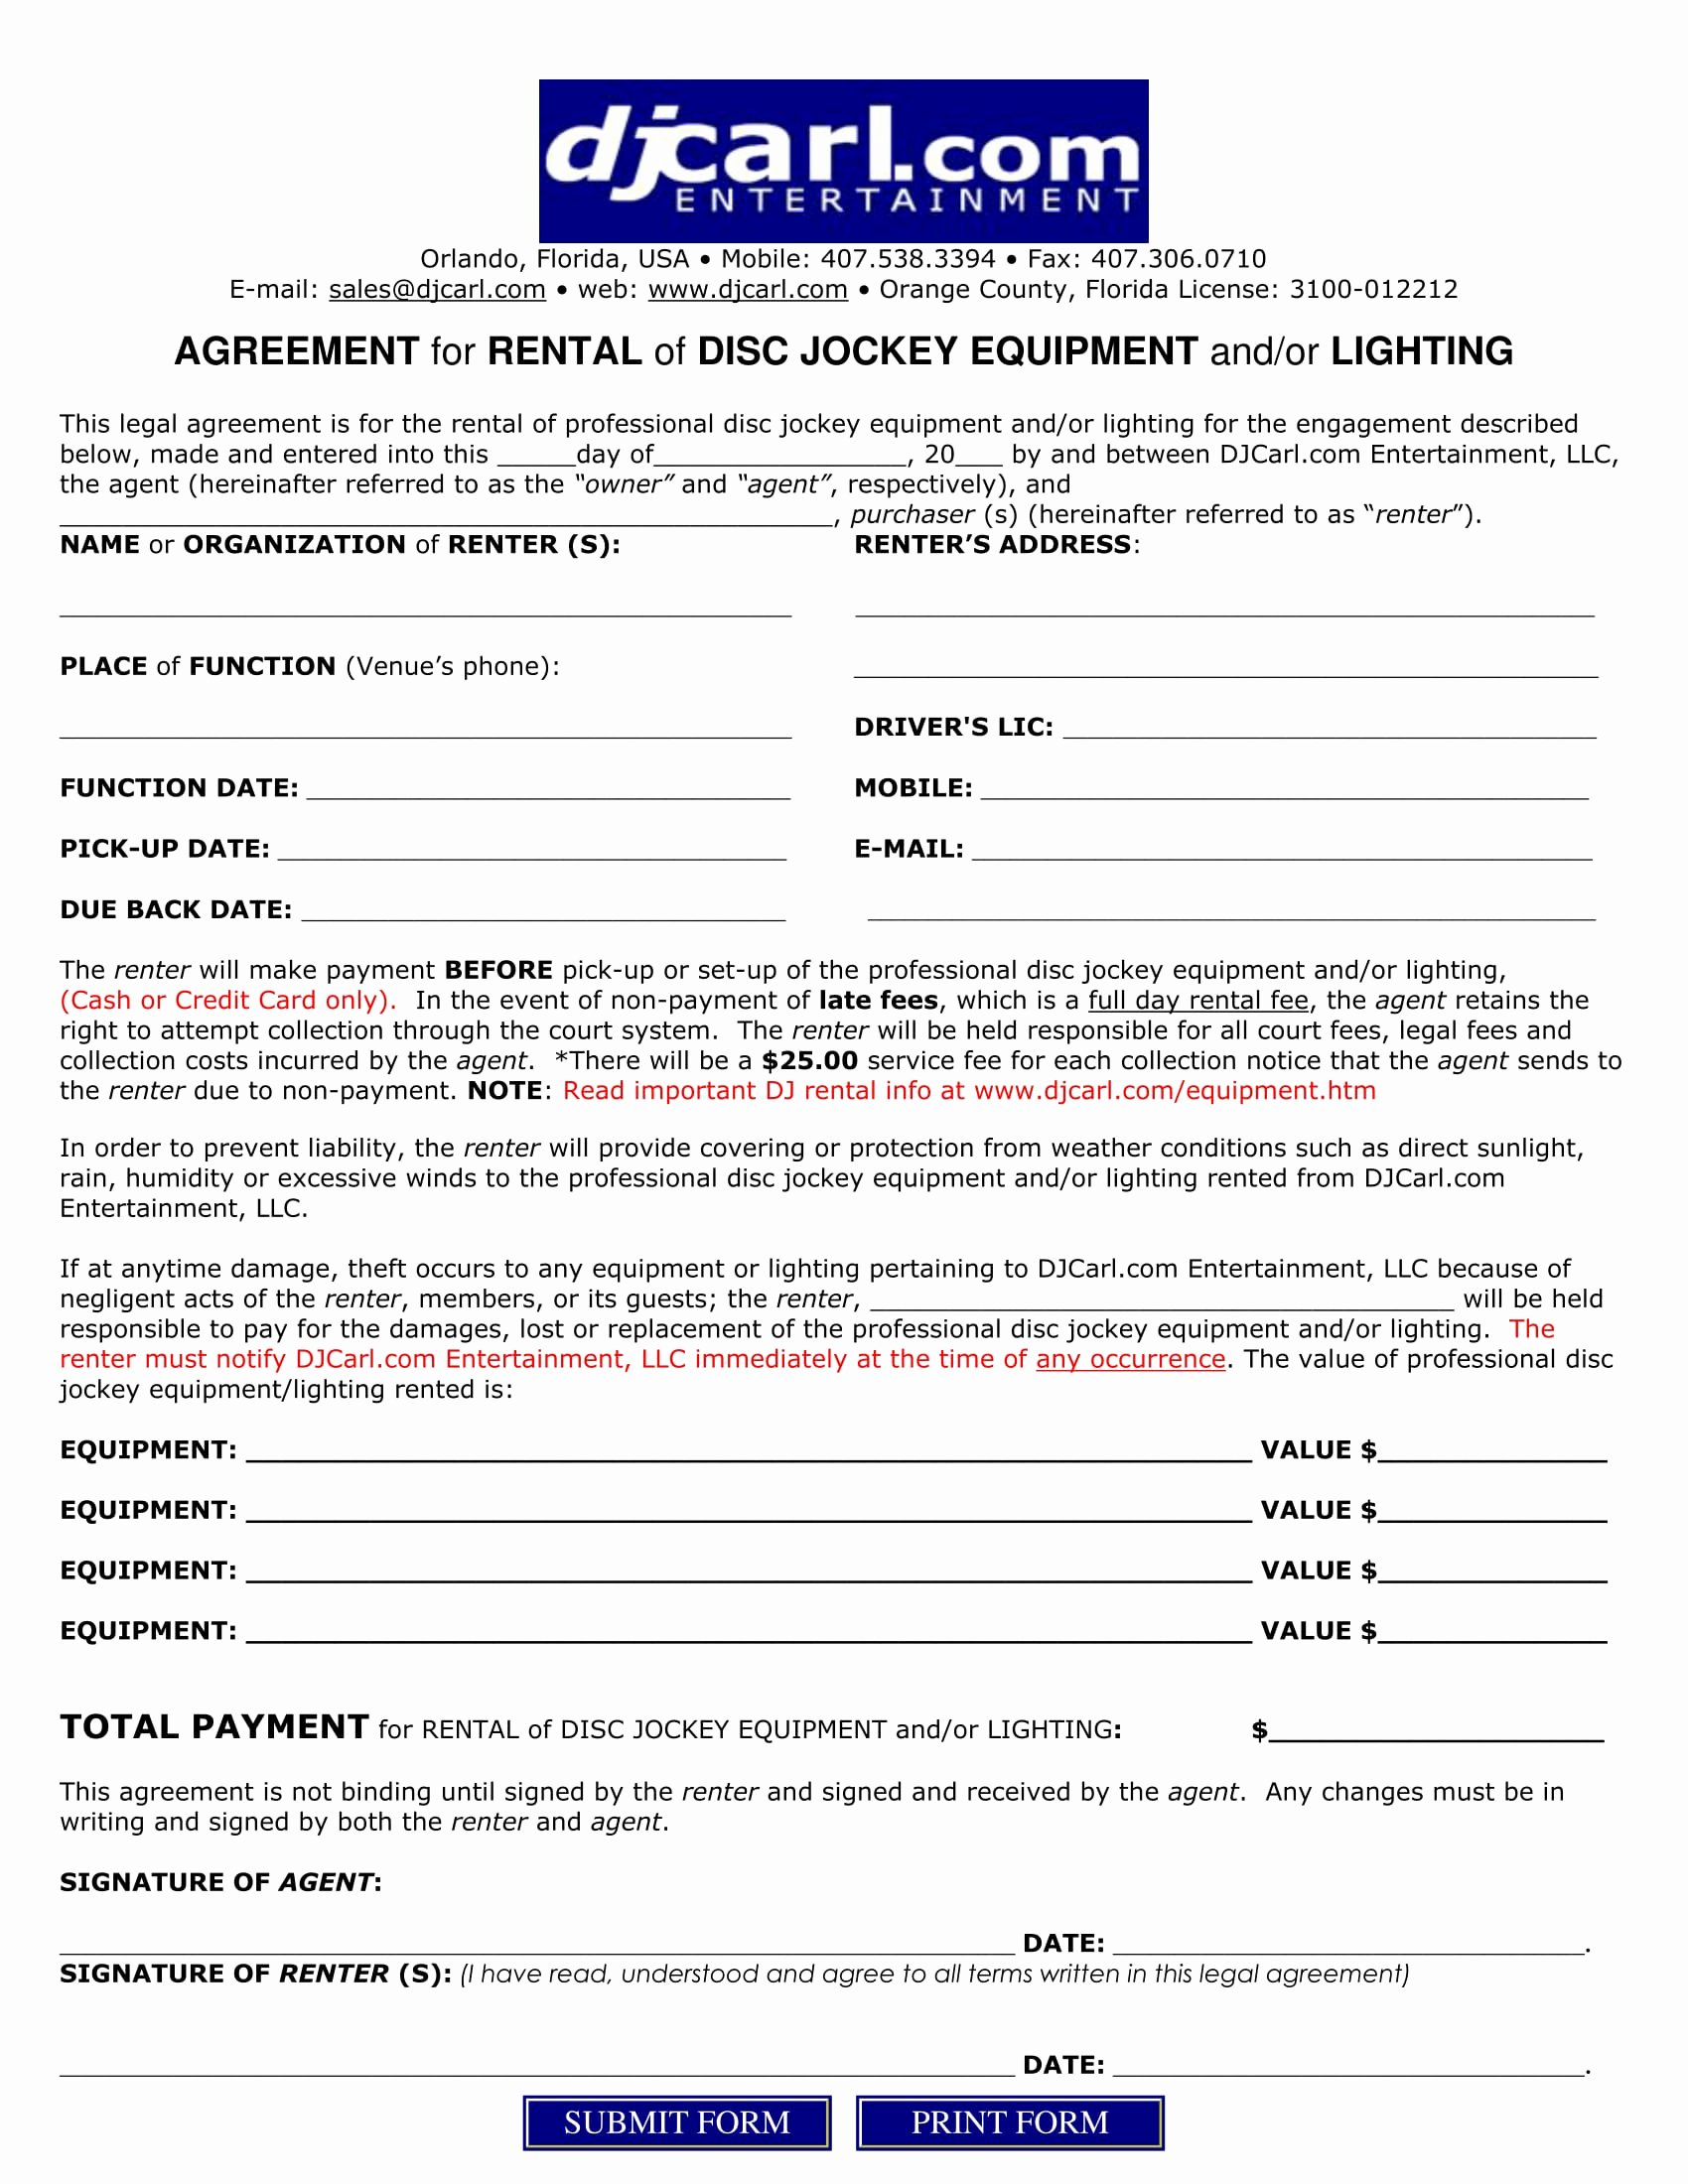 Disc Jockey Contracts Template Lovely 5 Dj Contract forms Dj Agreement Equipment Rental